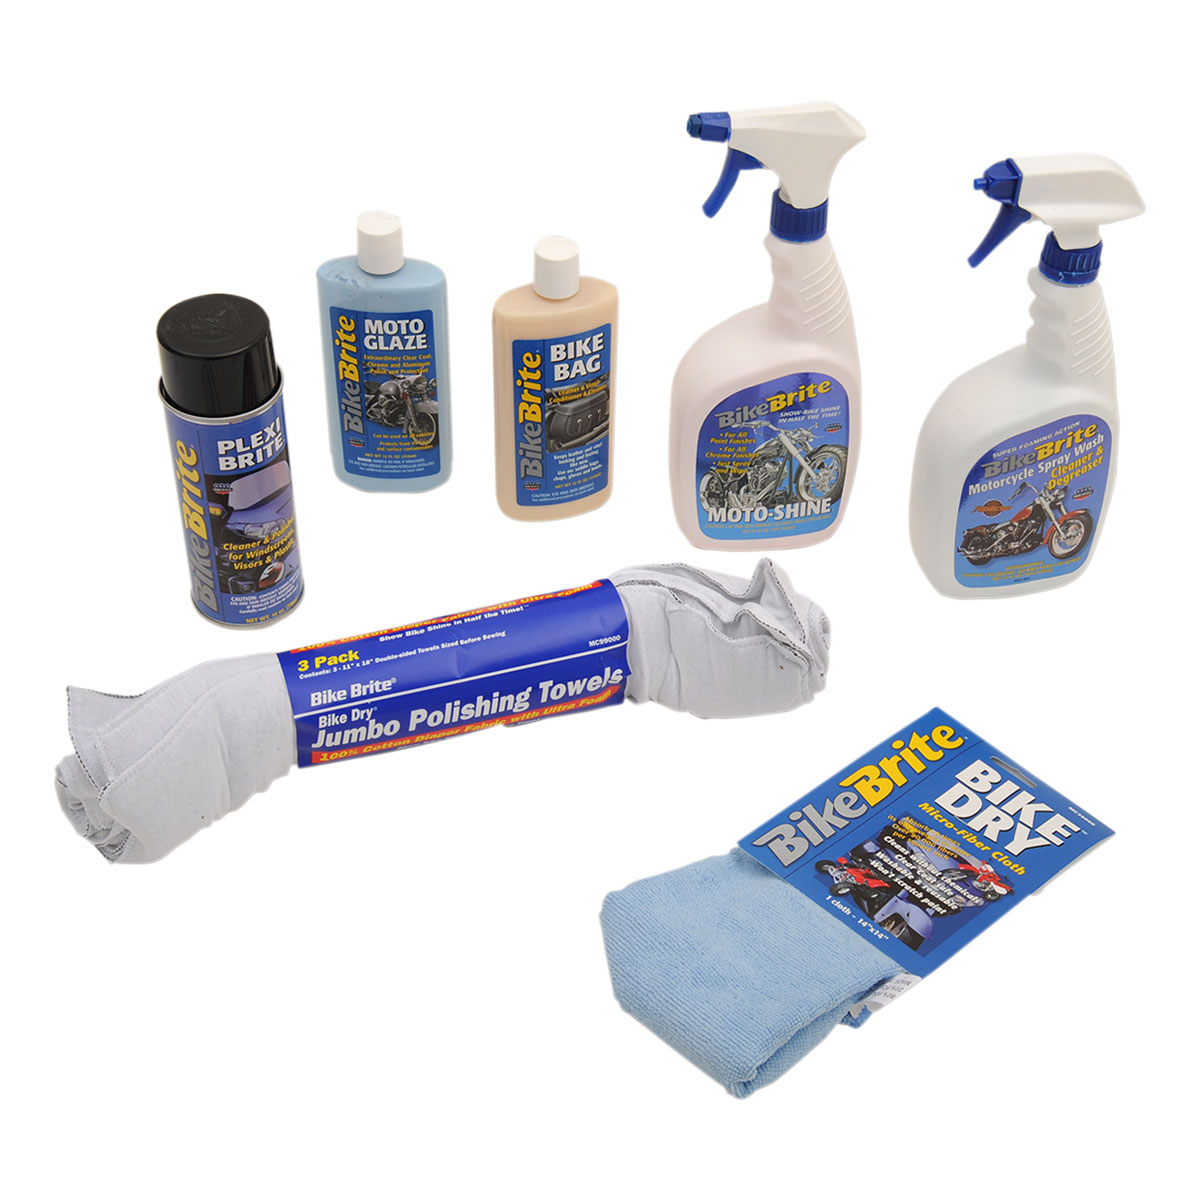 Bike Brite Moto Kit